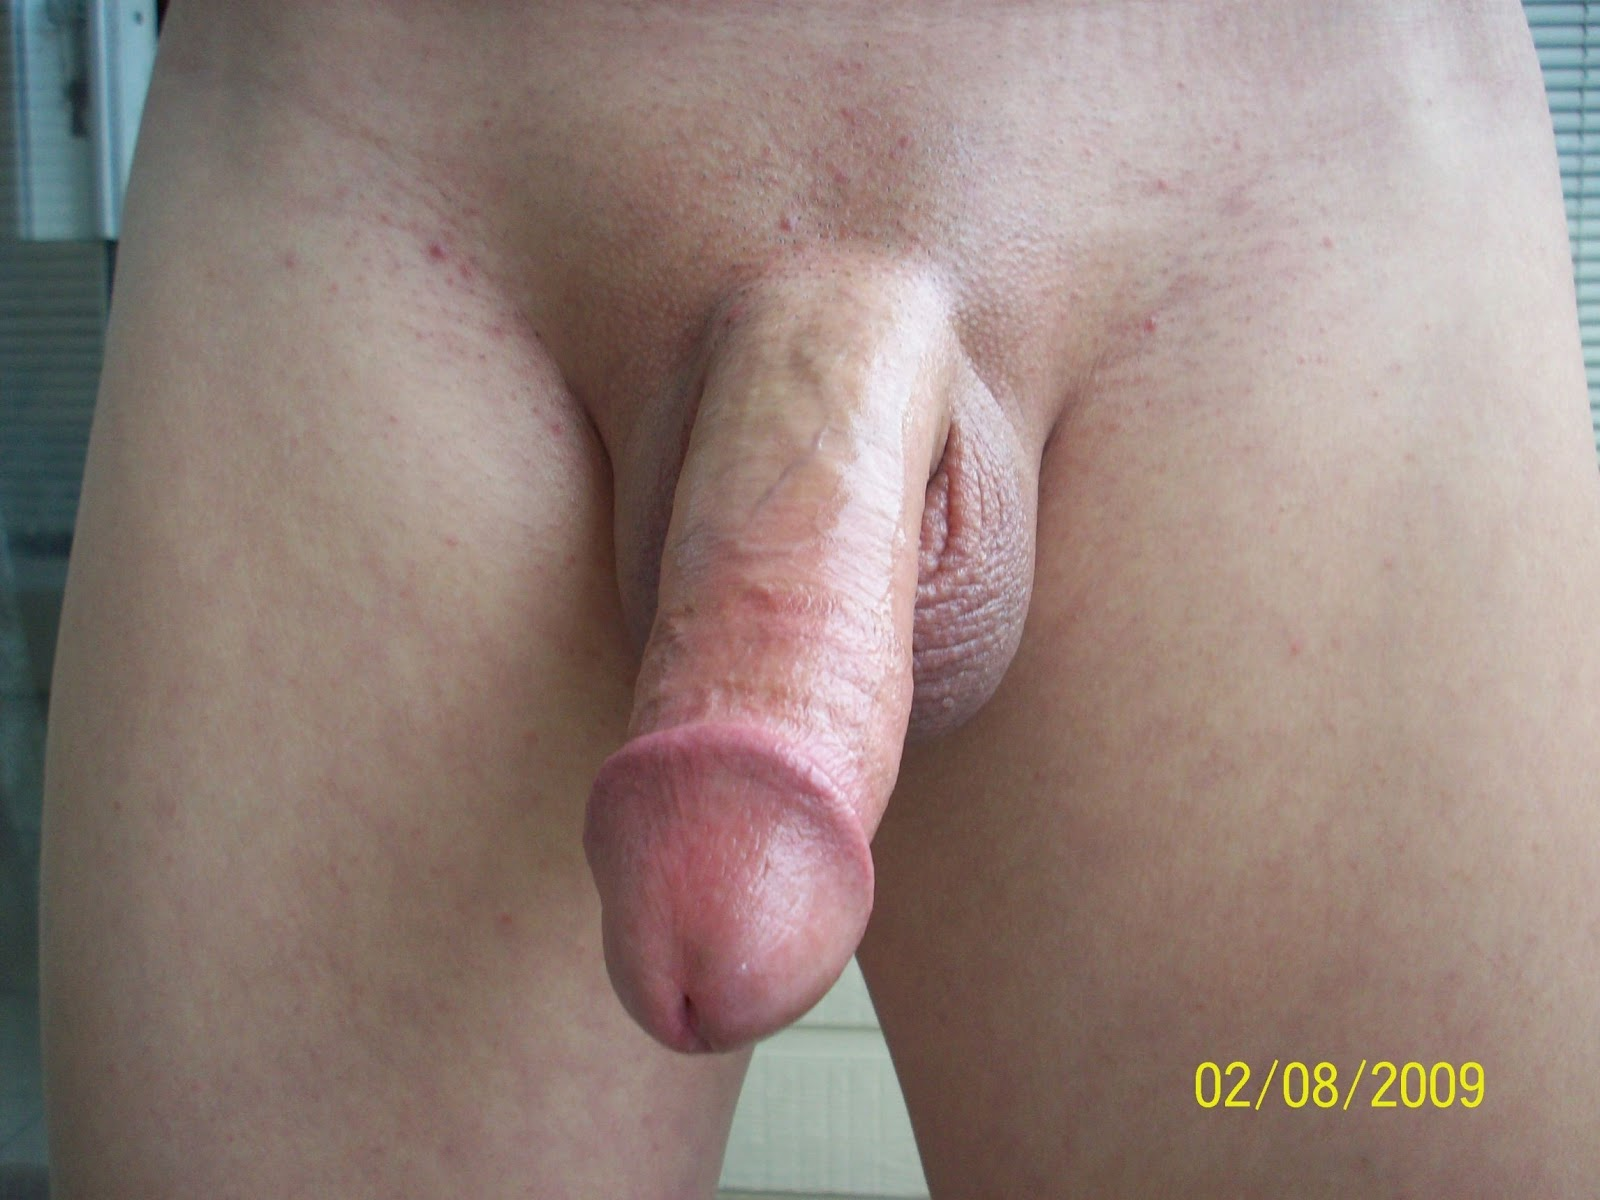 boy doing fingering pussy